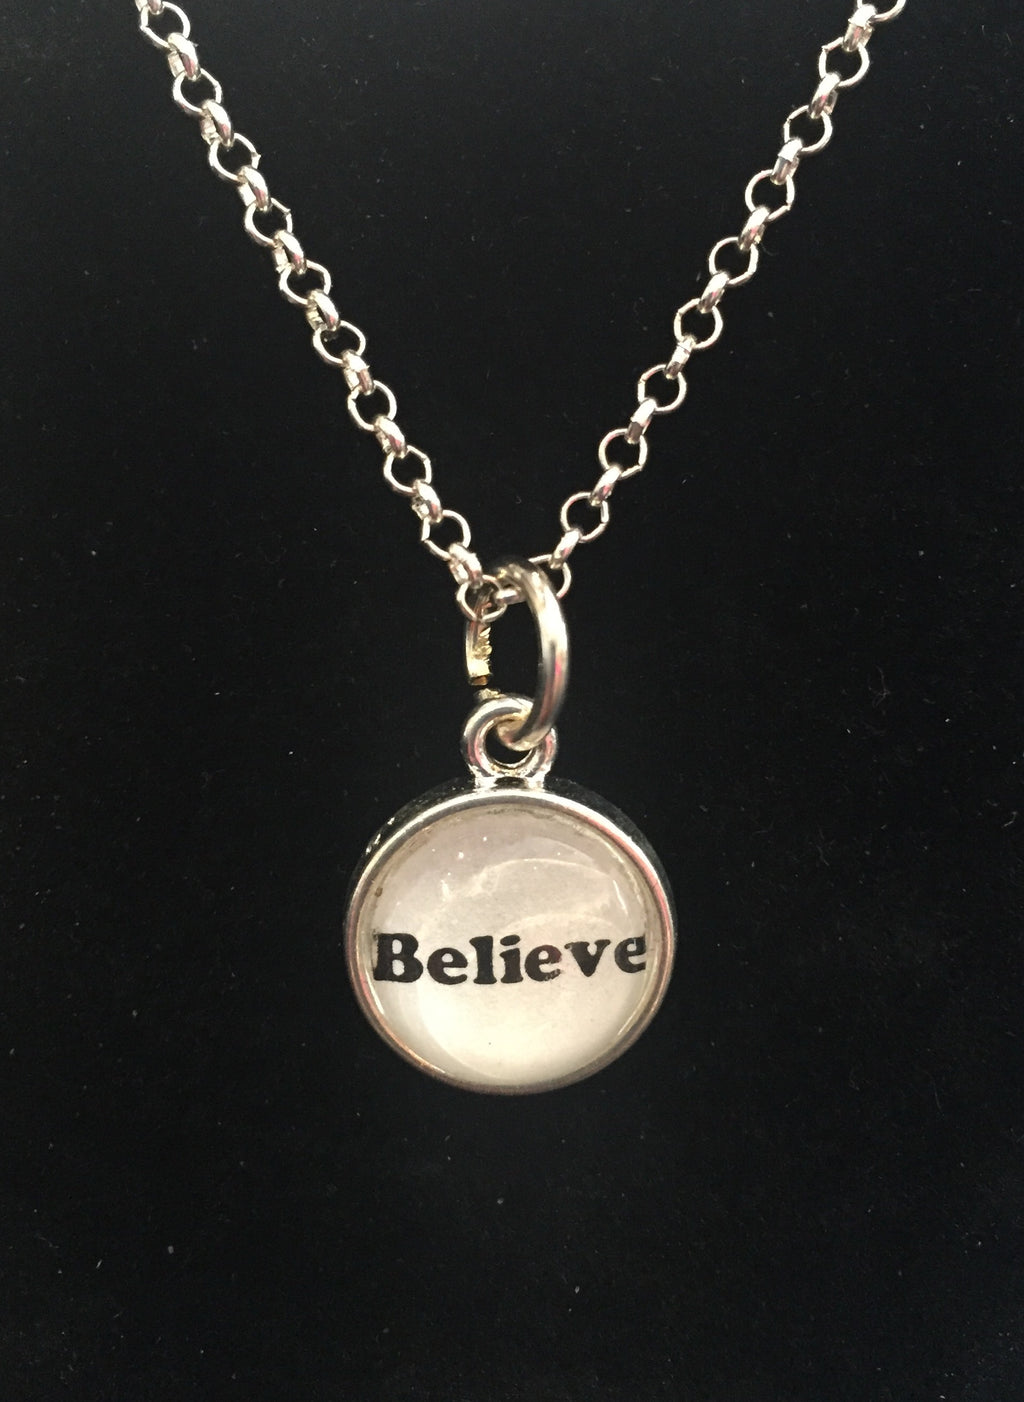 Believe Jewelry Necklace. Cleveland, Ohio. Believeland